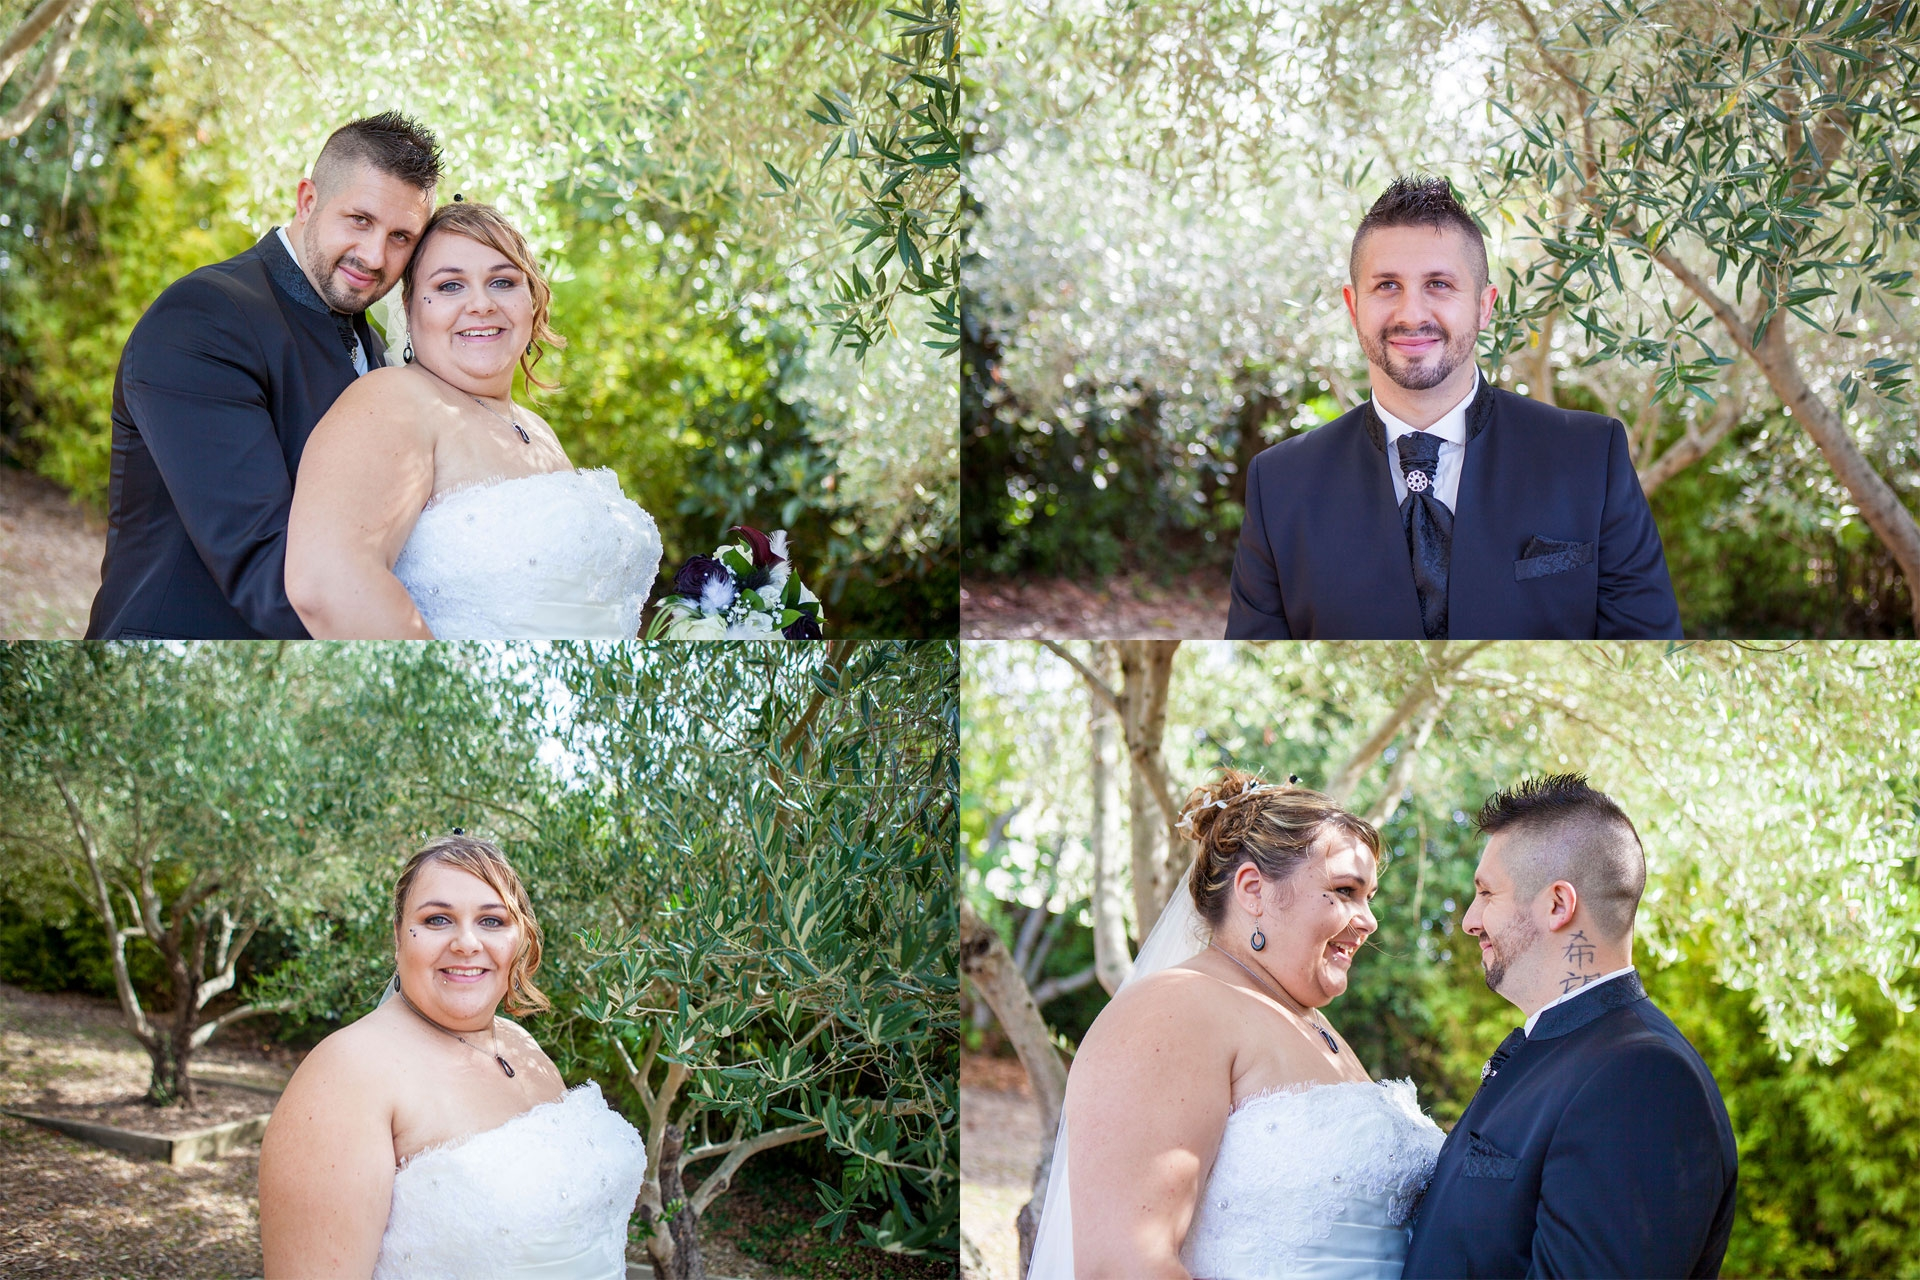 particuliers-evenements-mariages-oui-elodie&wilson-30